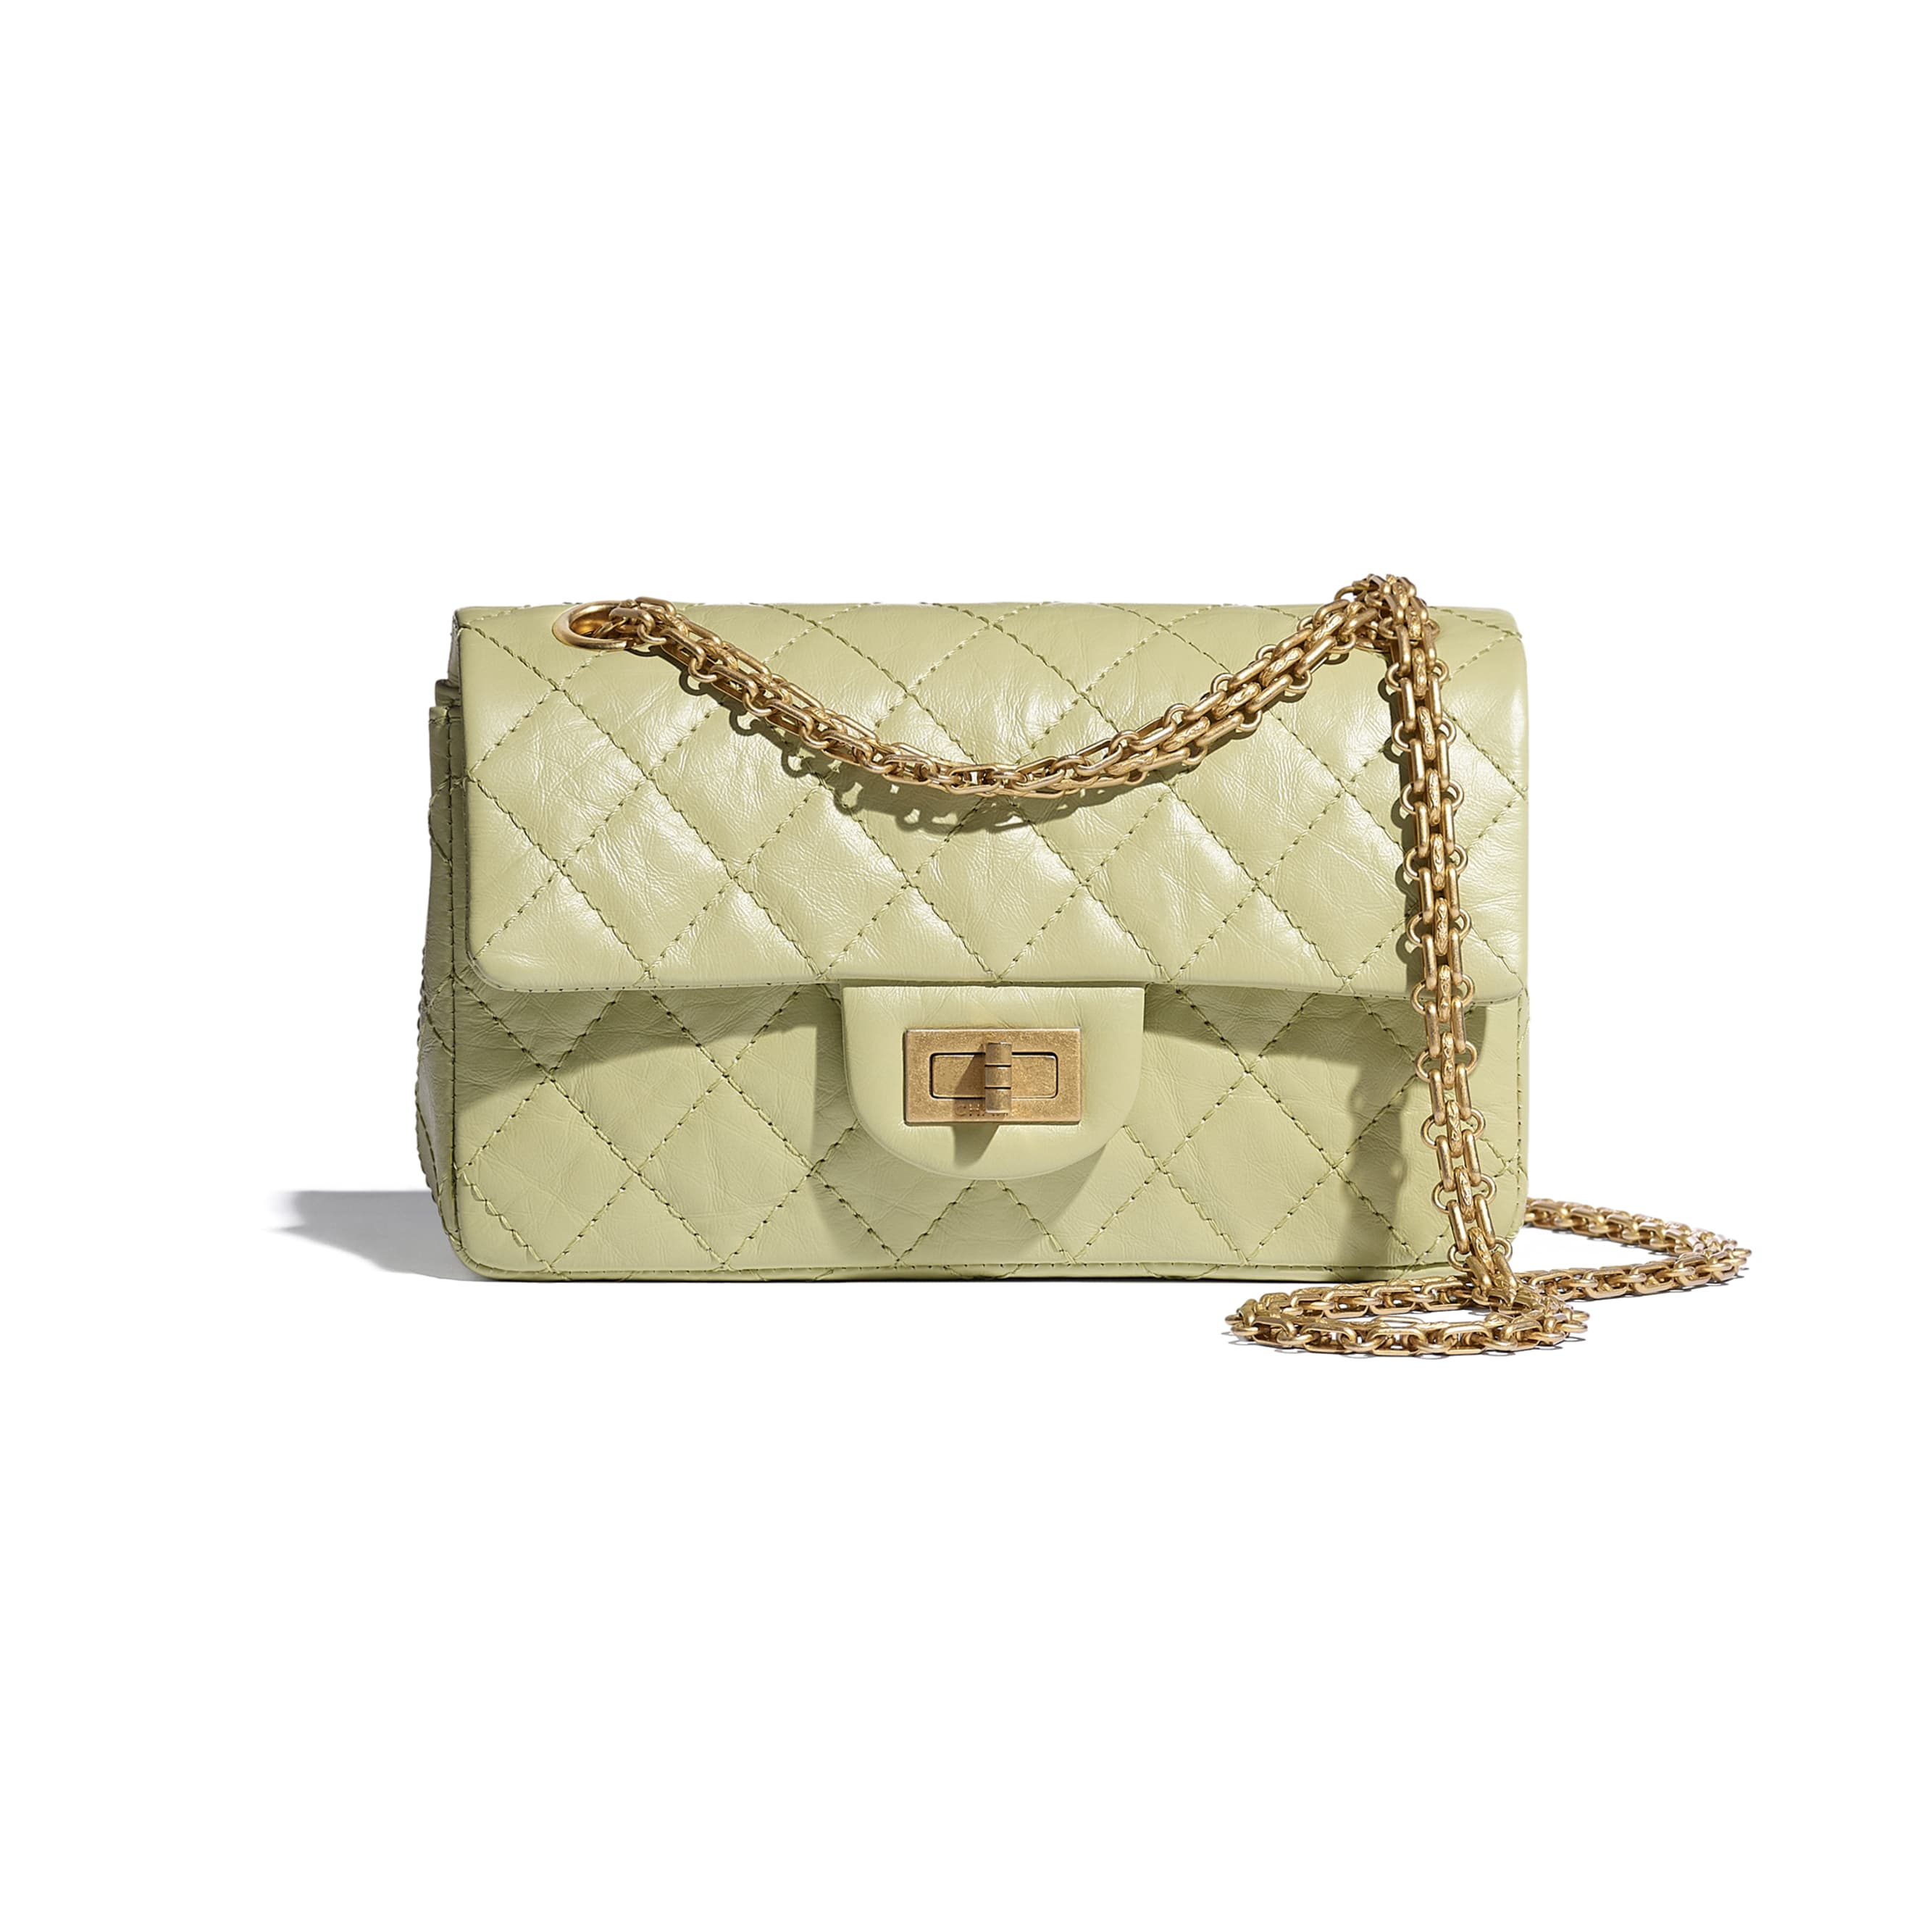 Mini 2.55 Handbag - Green - Aged Calfskin & Gold-Tone Metal - CHANEL - Default view - see standard sized version